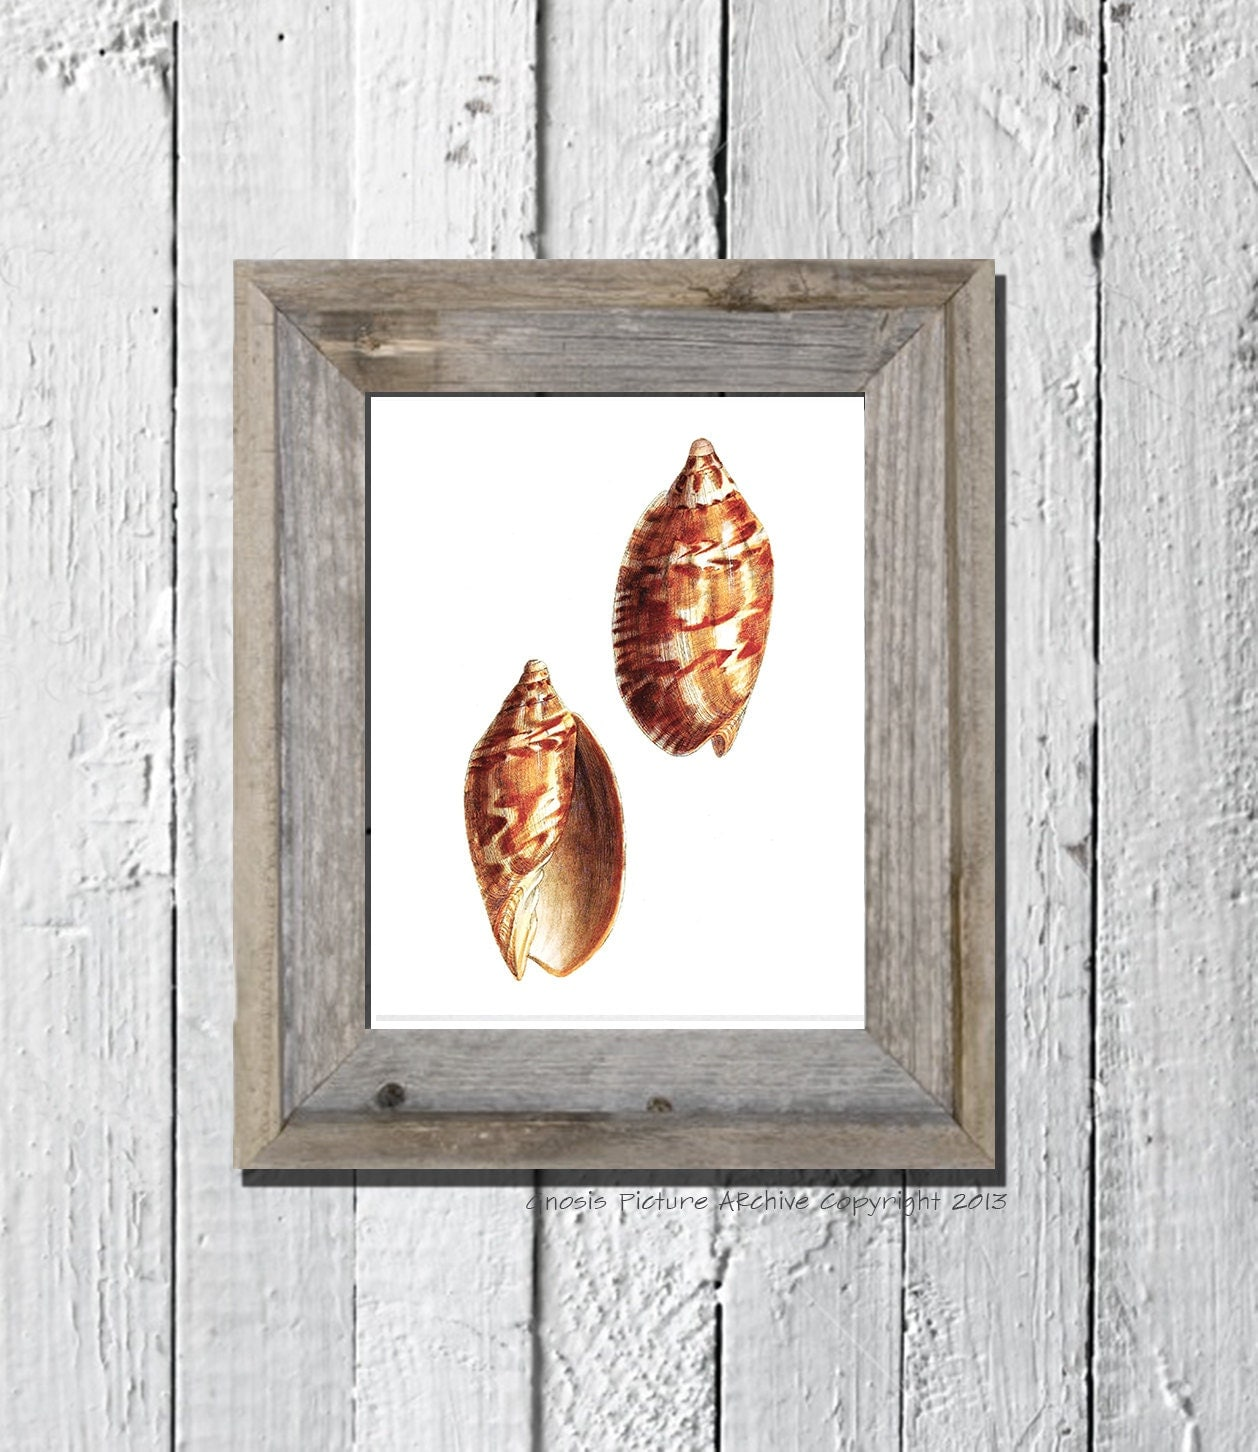 Popular items for sea life wall decor on Etsy